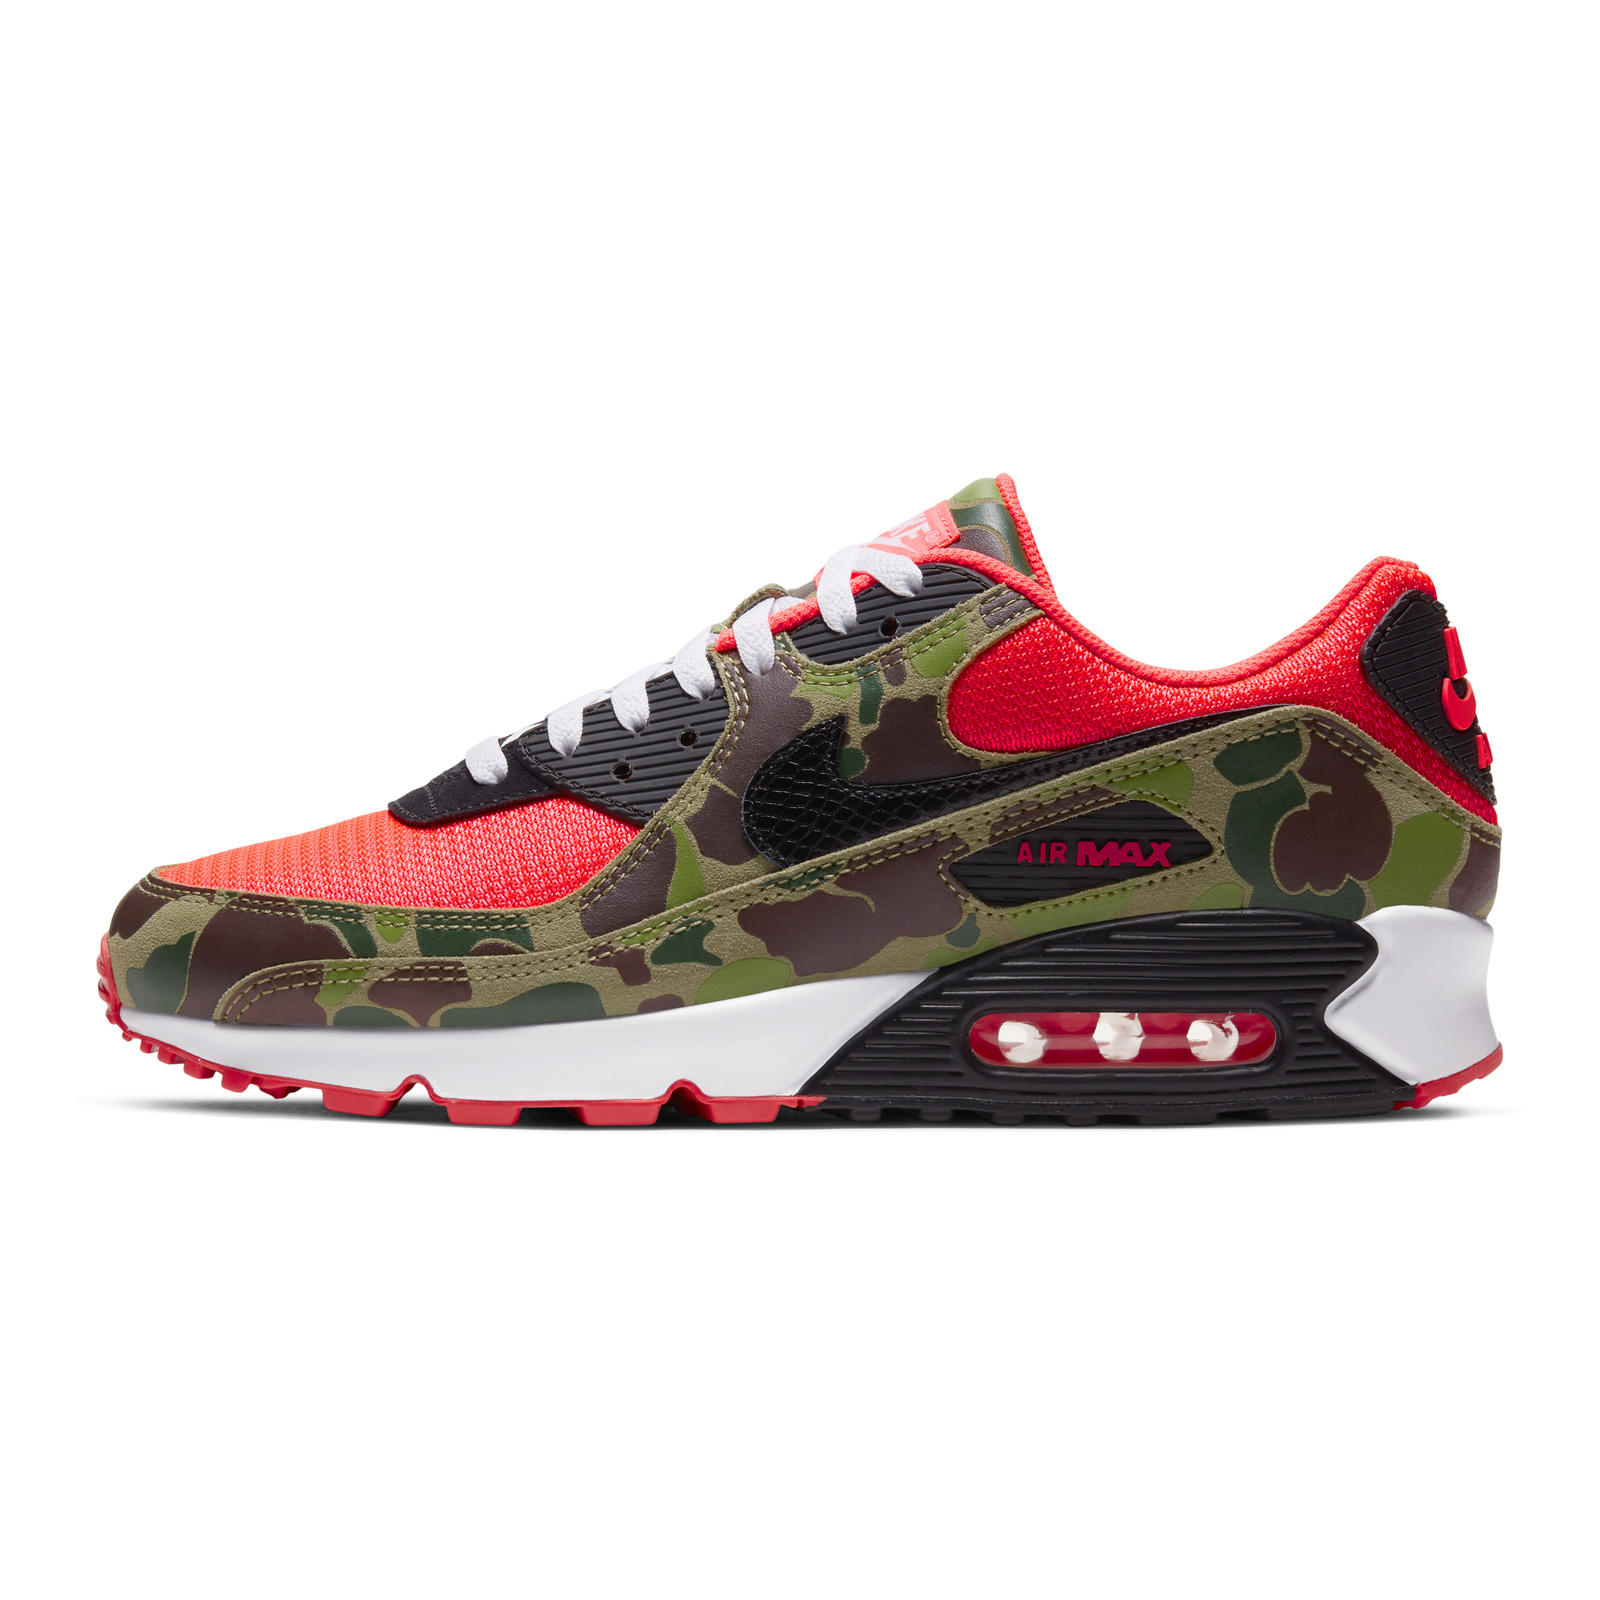 Air Max 90 'Duck Camo' Pack